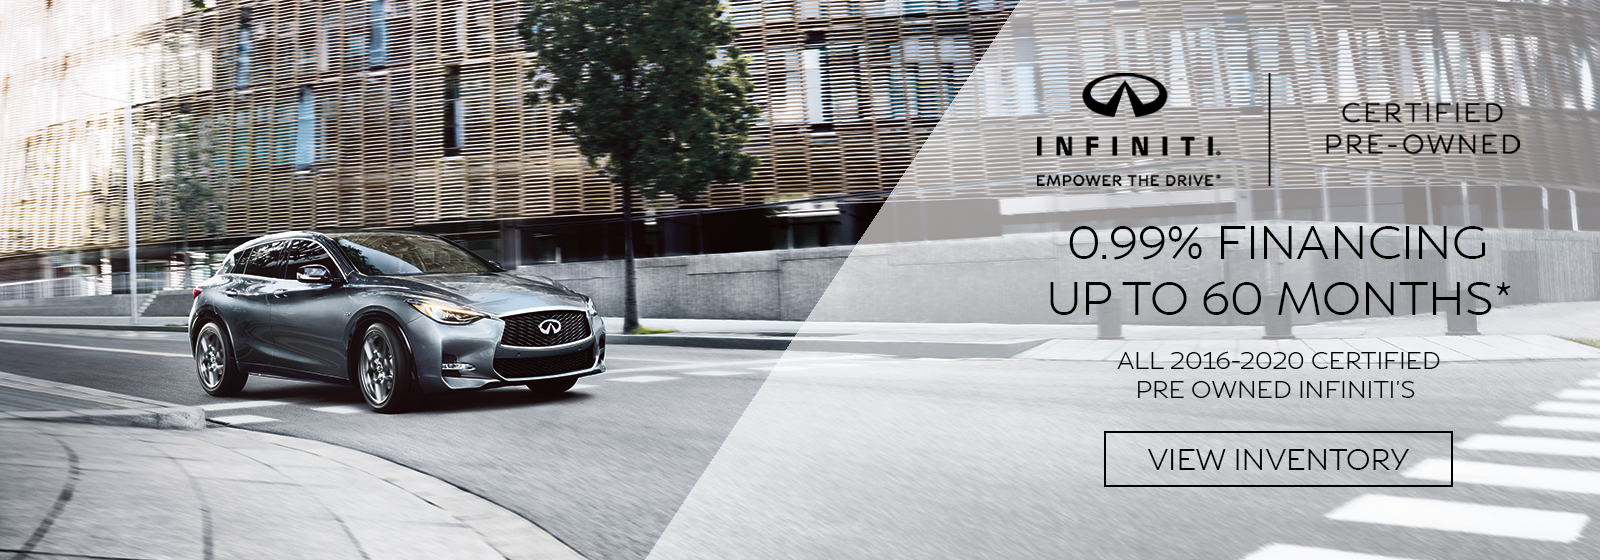 0.99% APR Financing up to 60 months on all 2016-2020 CPO INFINITI's